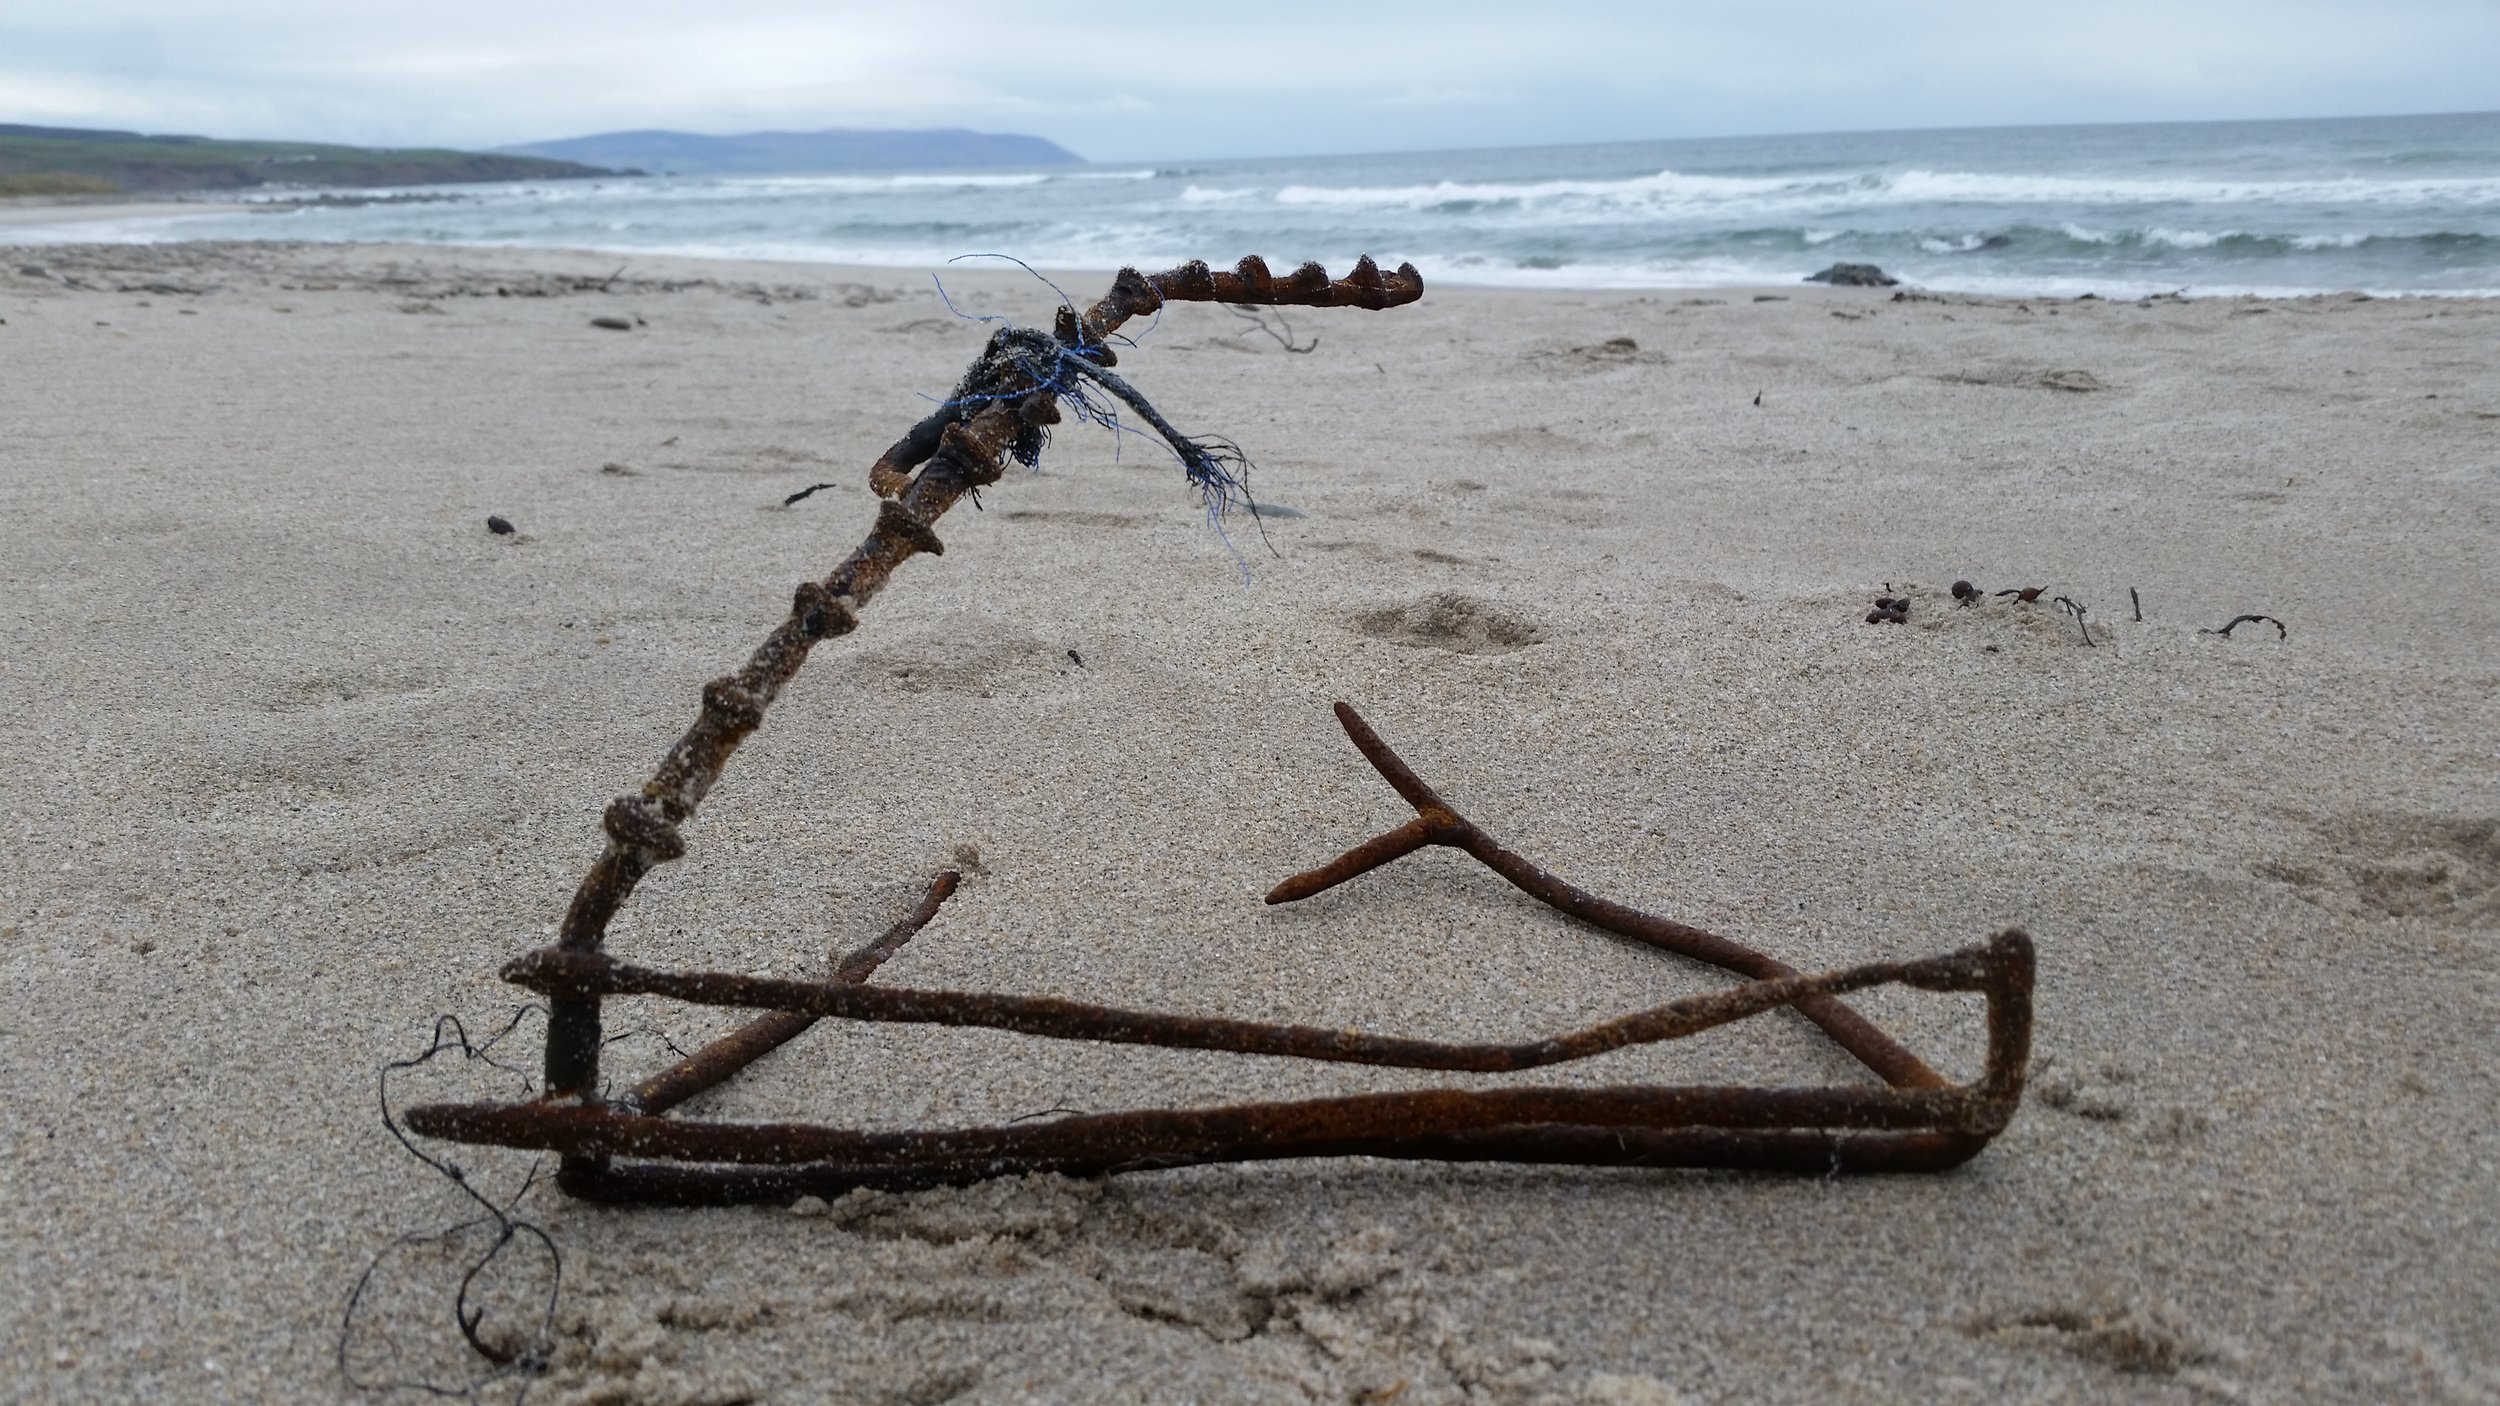 The remains of a lobster trap we found partially buried with only the sharp pointed ends exposed - this could have resulted in a nasty injury if stood on.